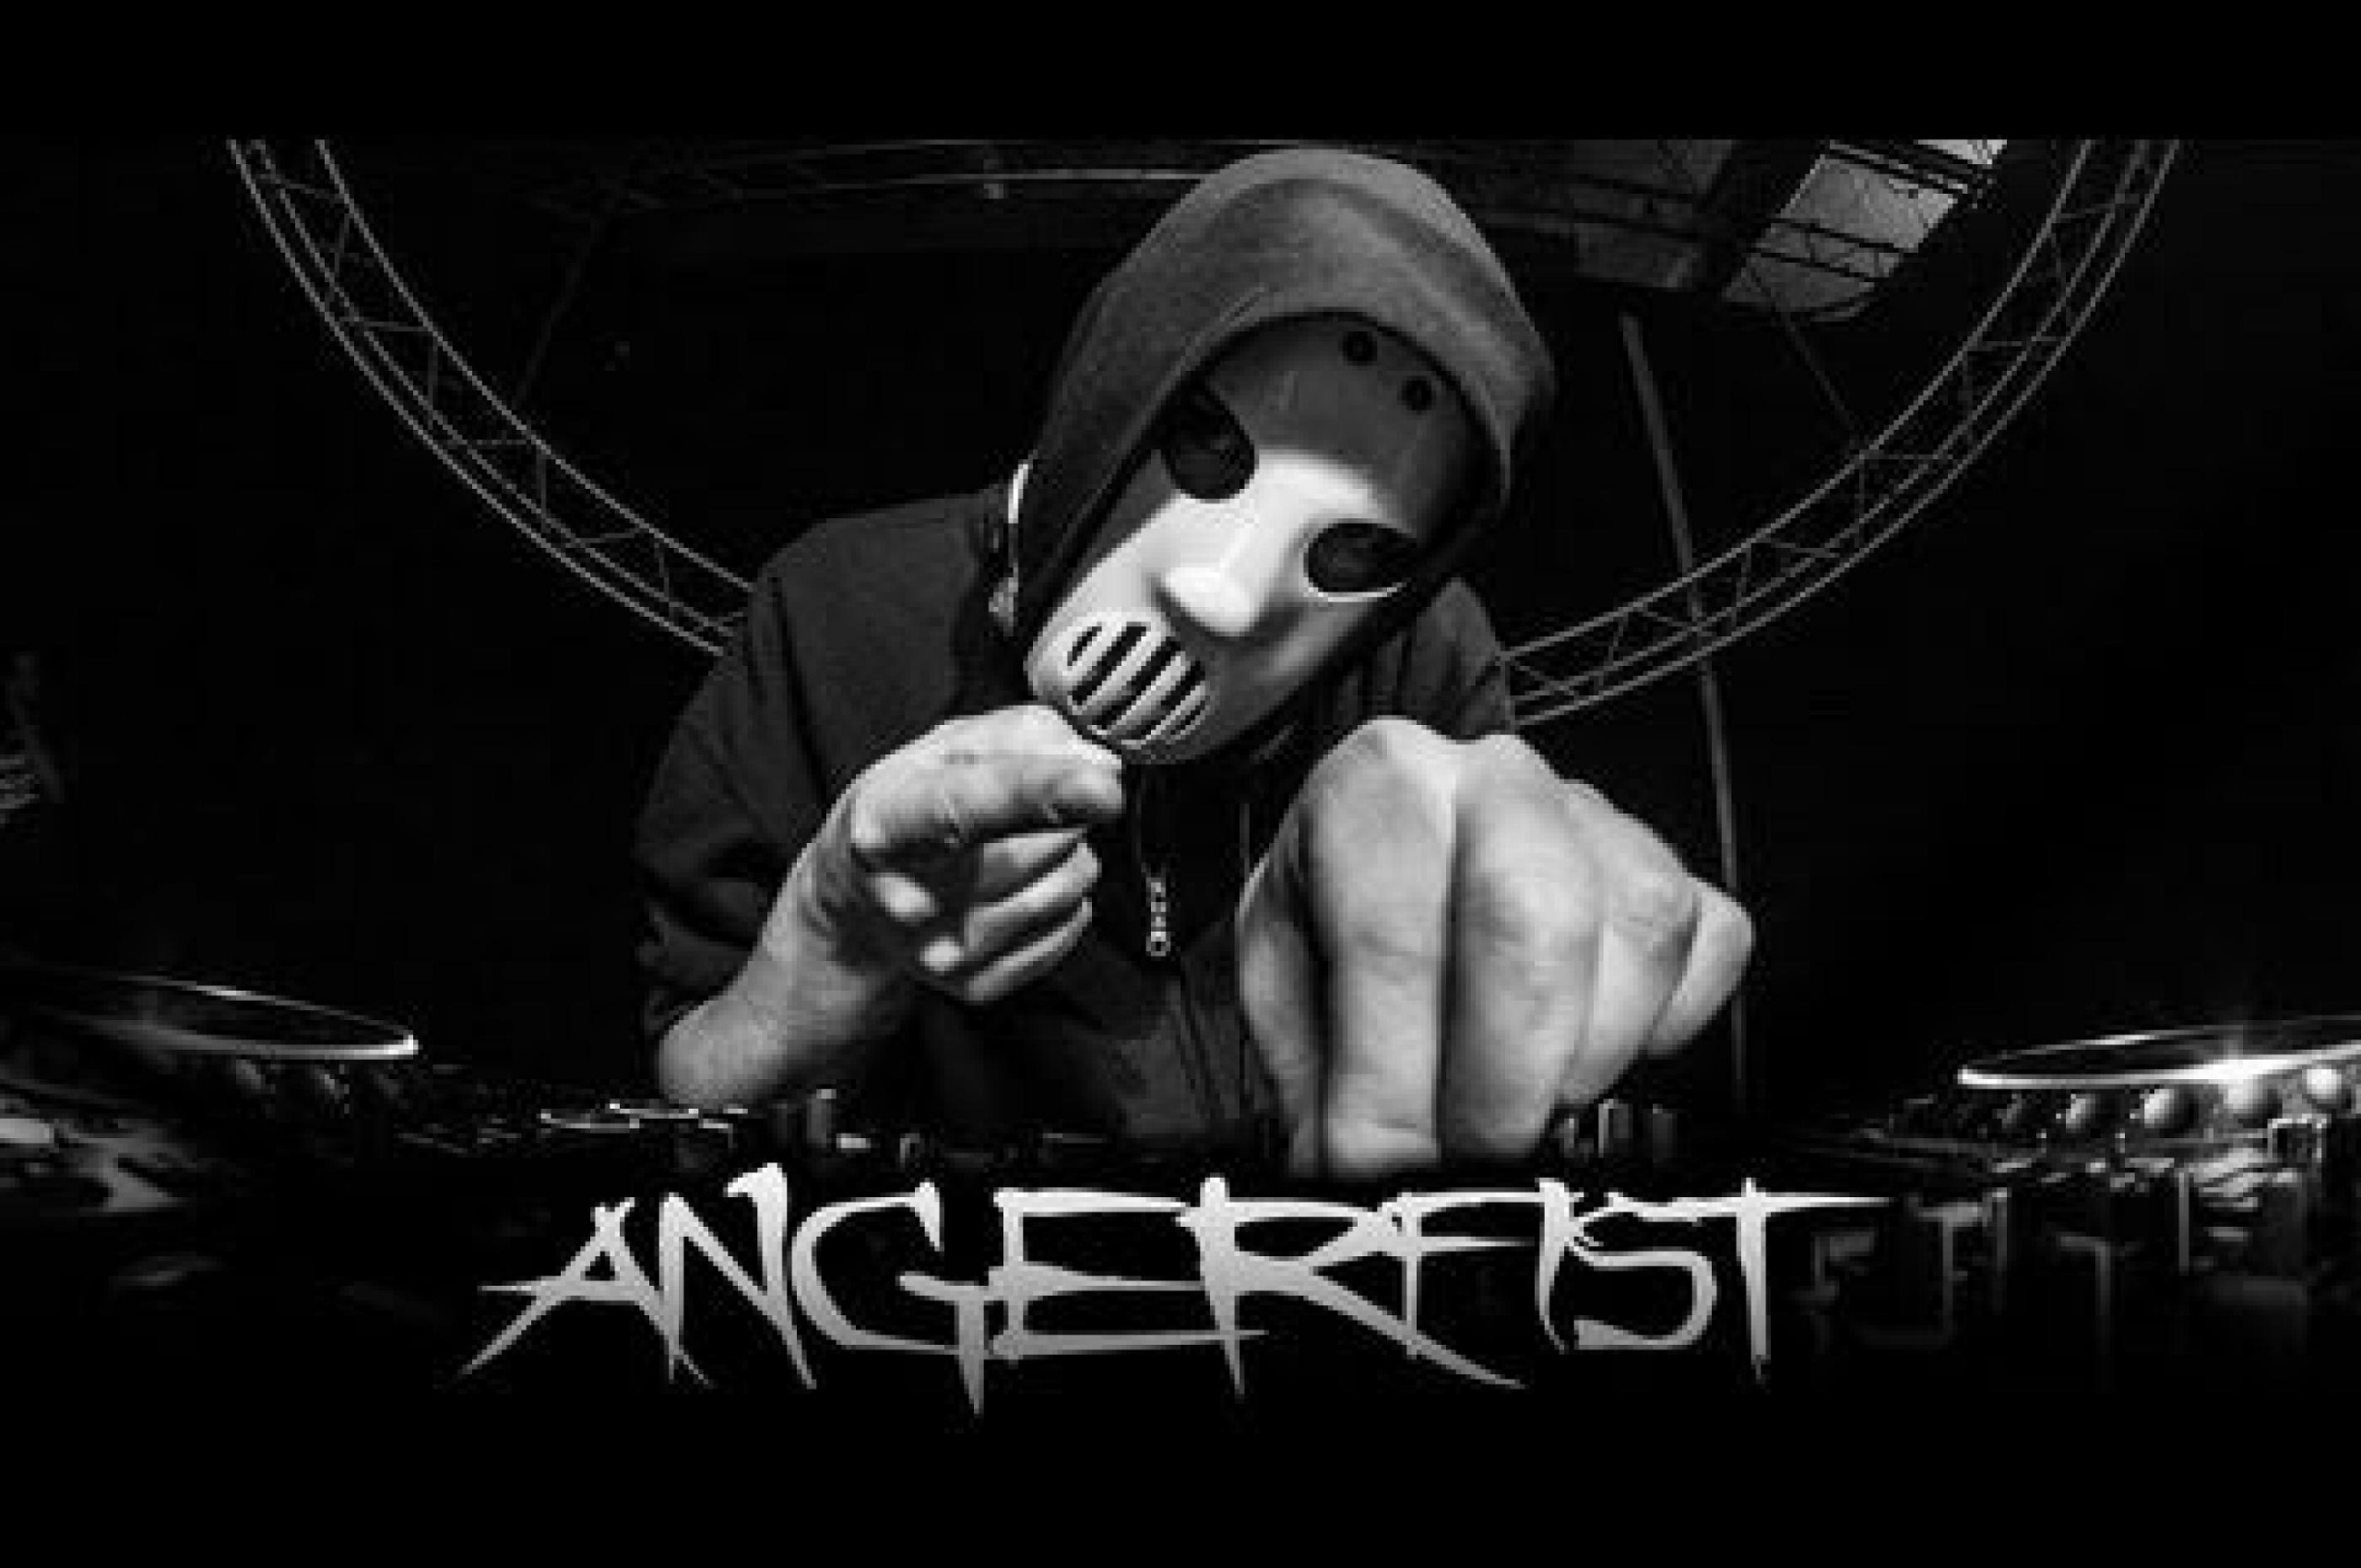 Free Download Angerfist Wallpapers High Resolution 5ll98m9